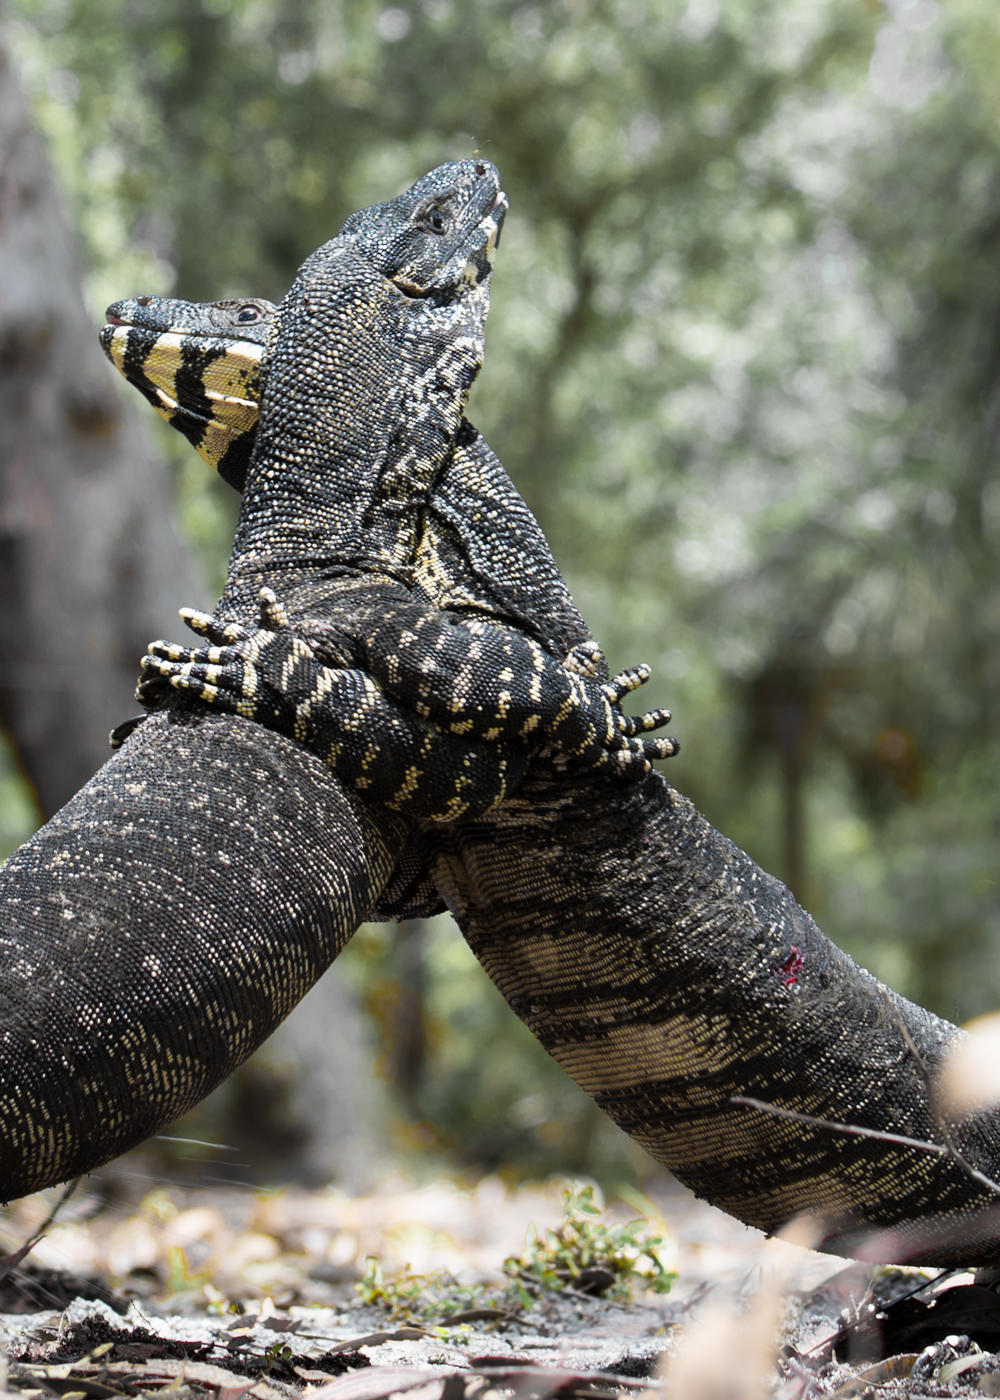 A goanna fight goes on for ages until there is a winner.